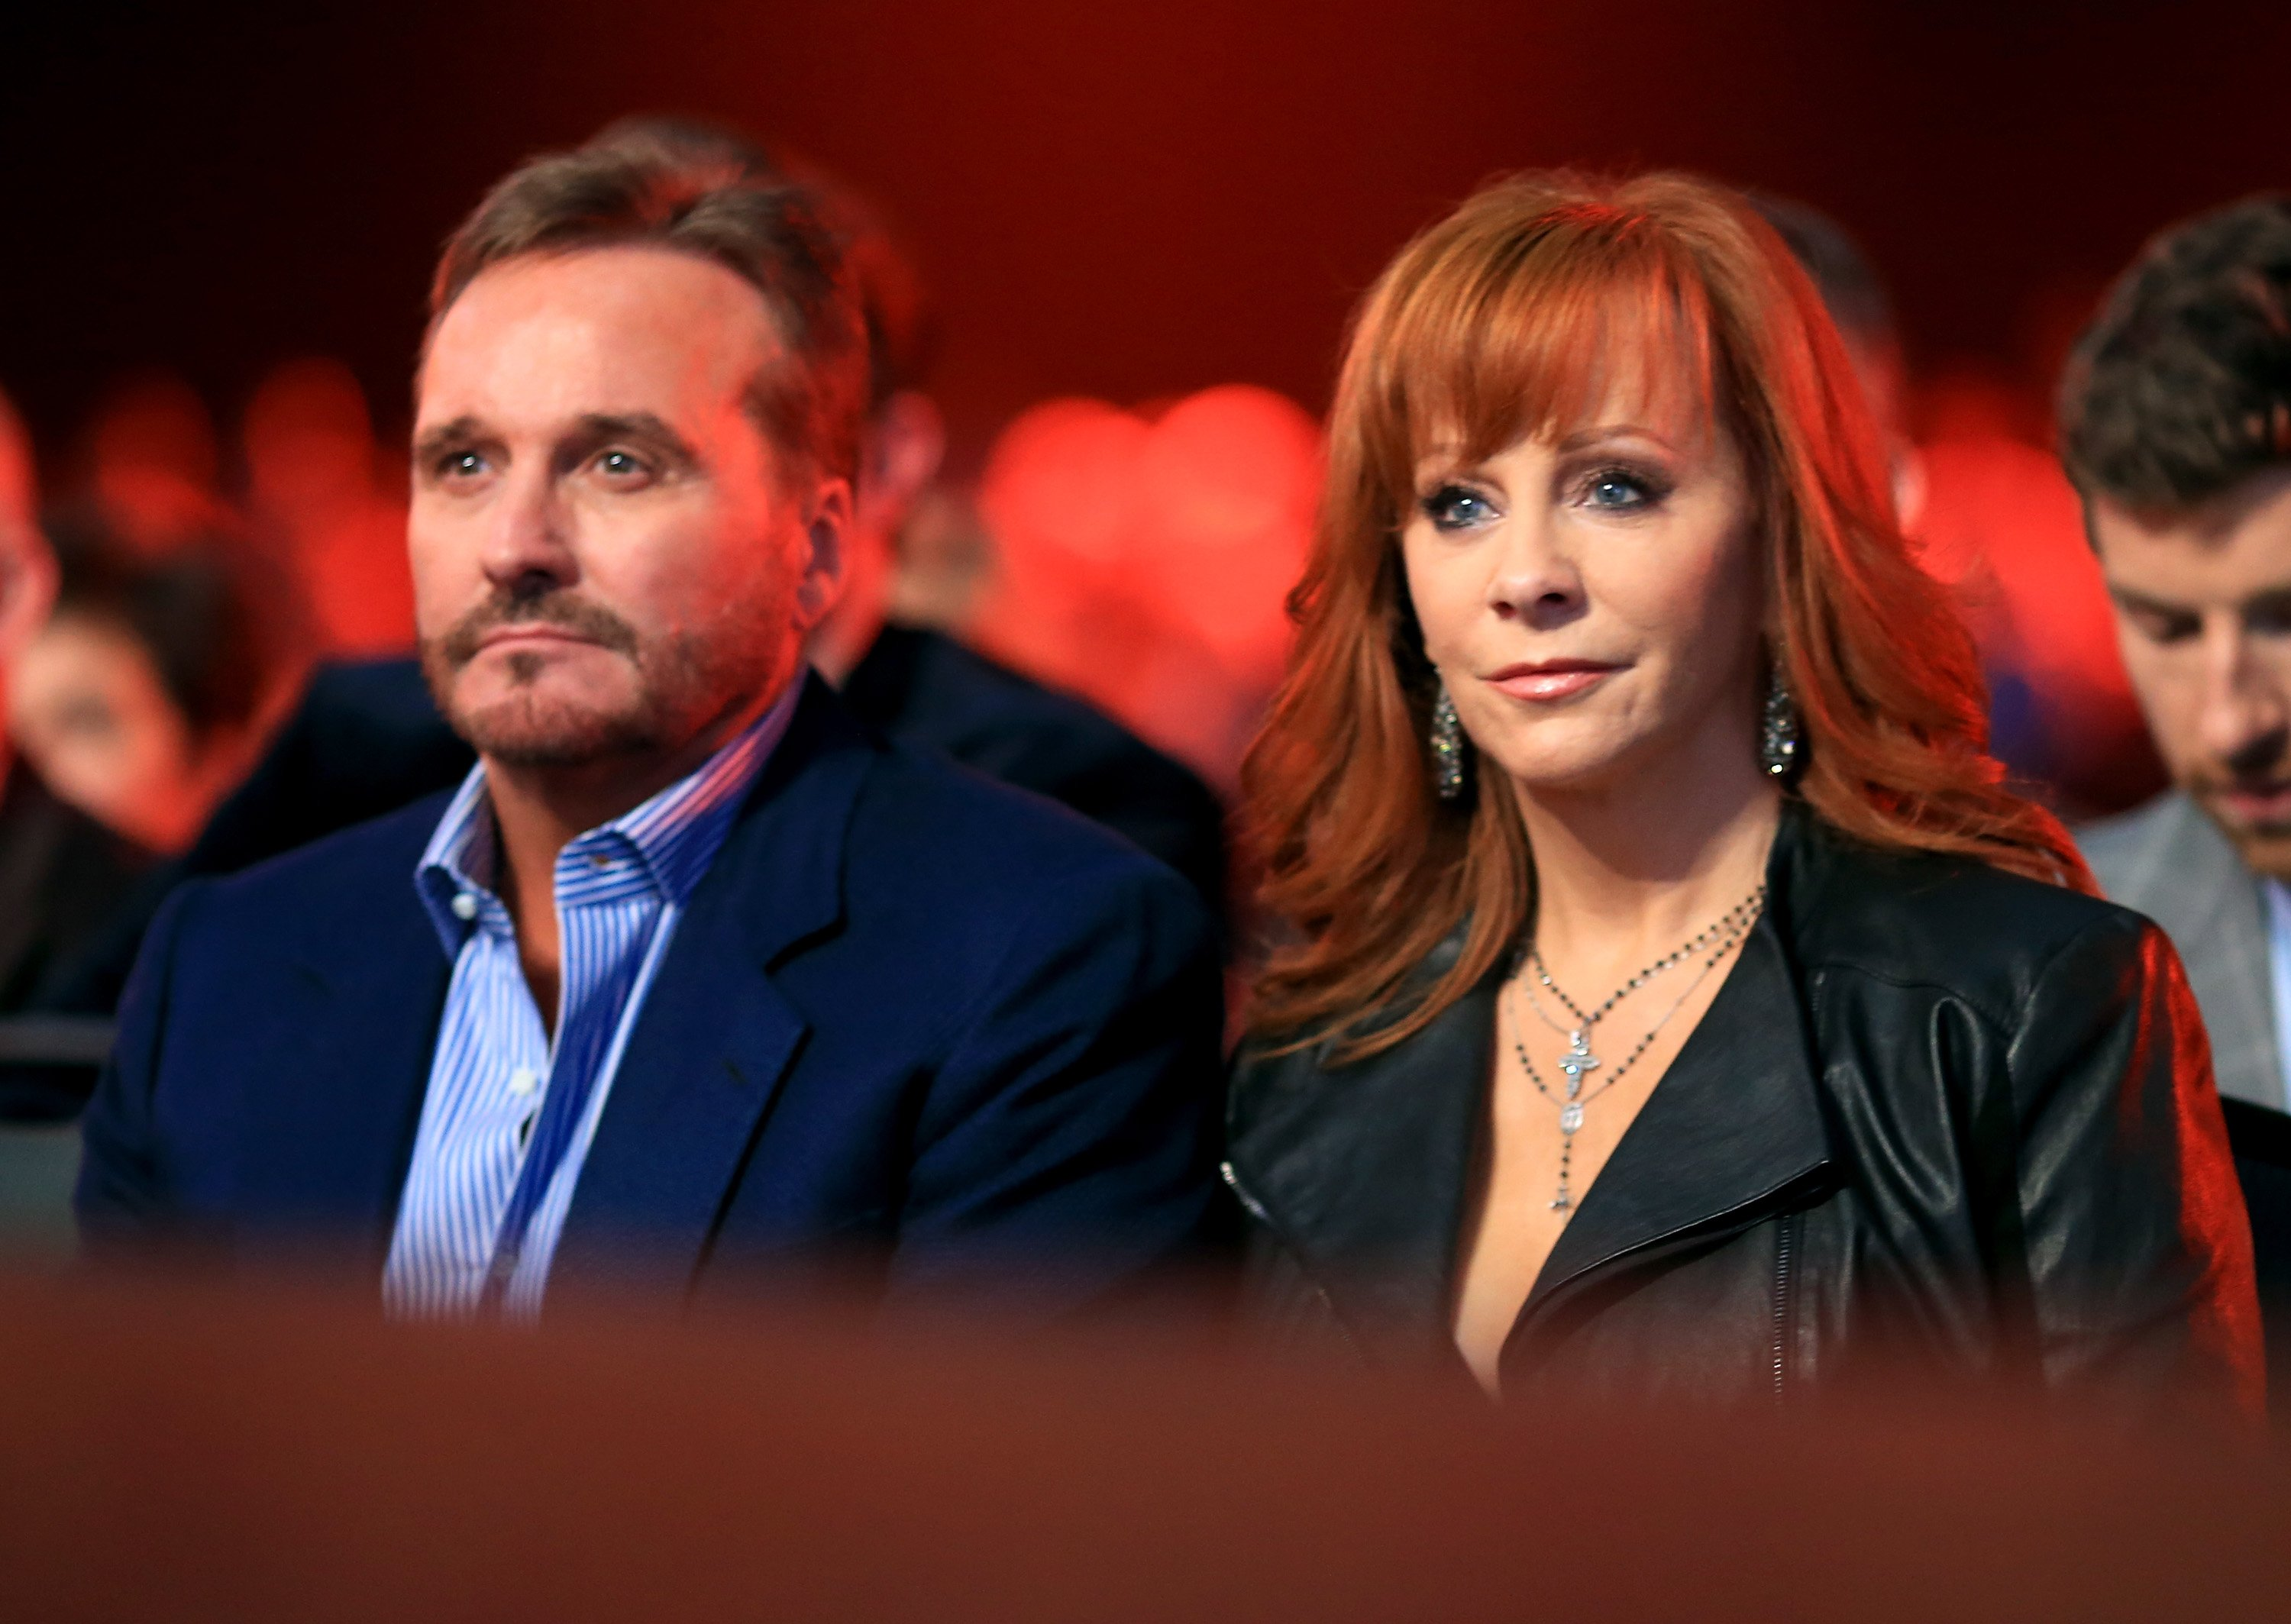 Narvel Blackstock and Reba McEntire attend the 2014 American Country Countdown Awards at Music City Center on December 15, 2014, in Nashville, Tennessee. | Source: Getty Images.